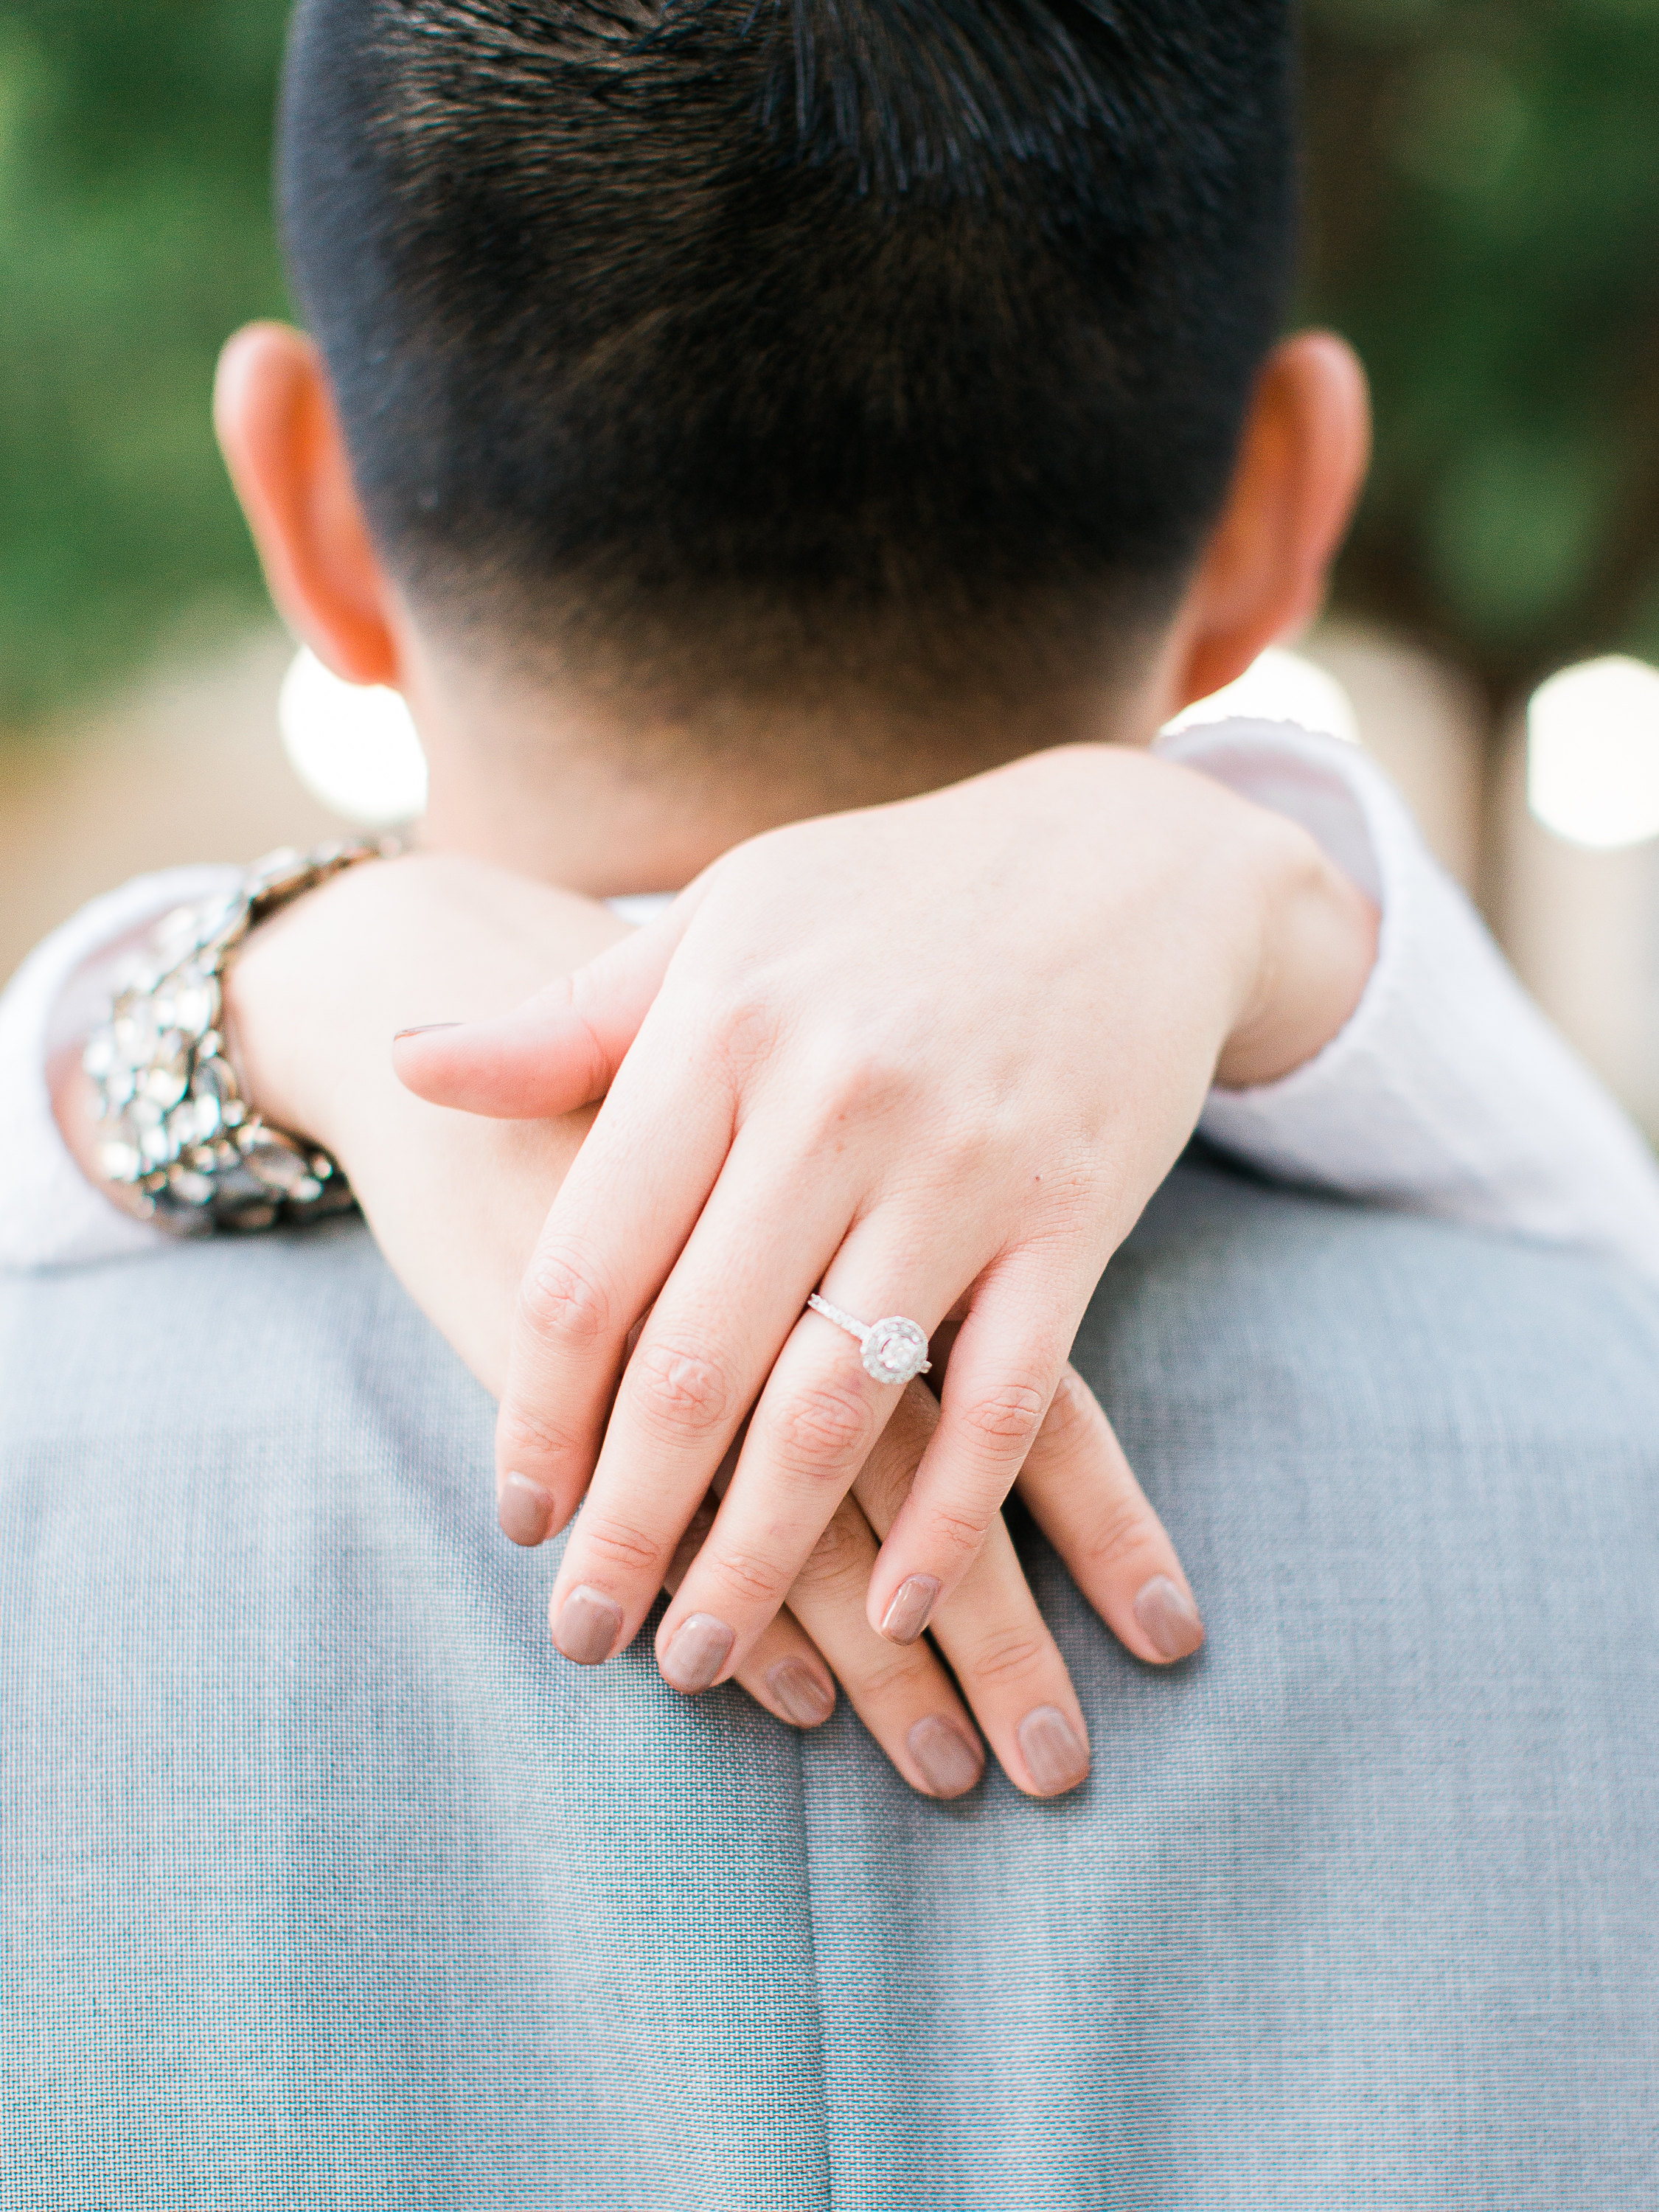 Klint and Yessy Engagement _ Brandon J Ferlin Photography-77.jpg